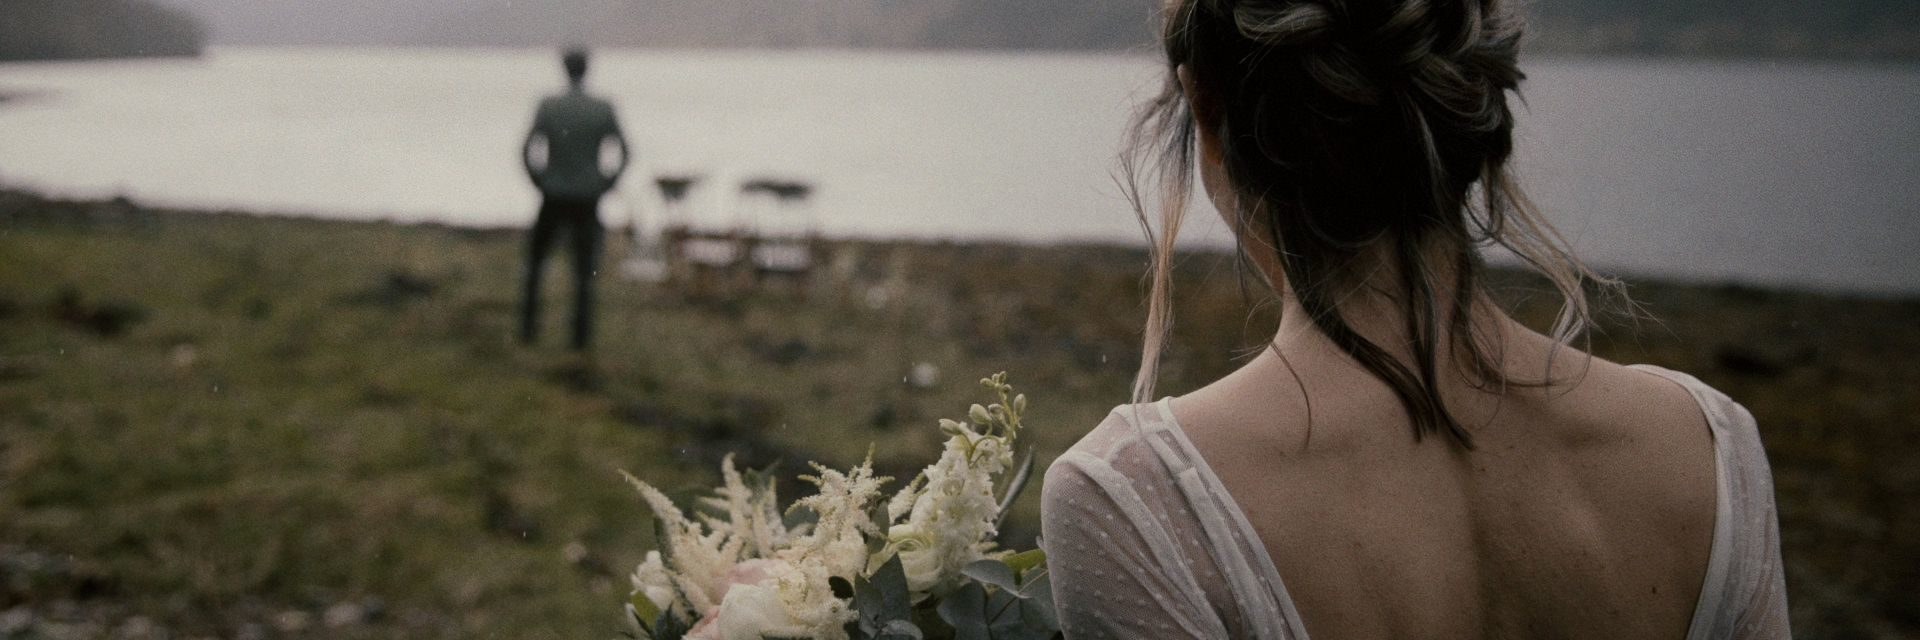 Andros-wedding-videographer-cinemate-films-02